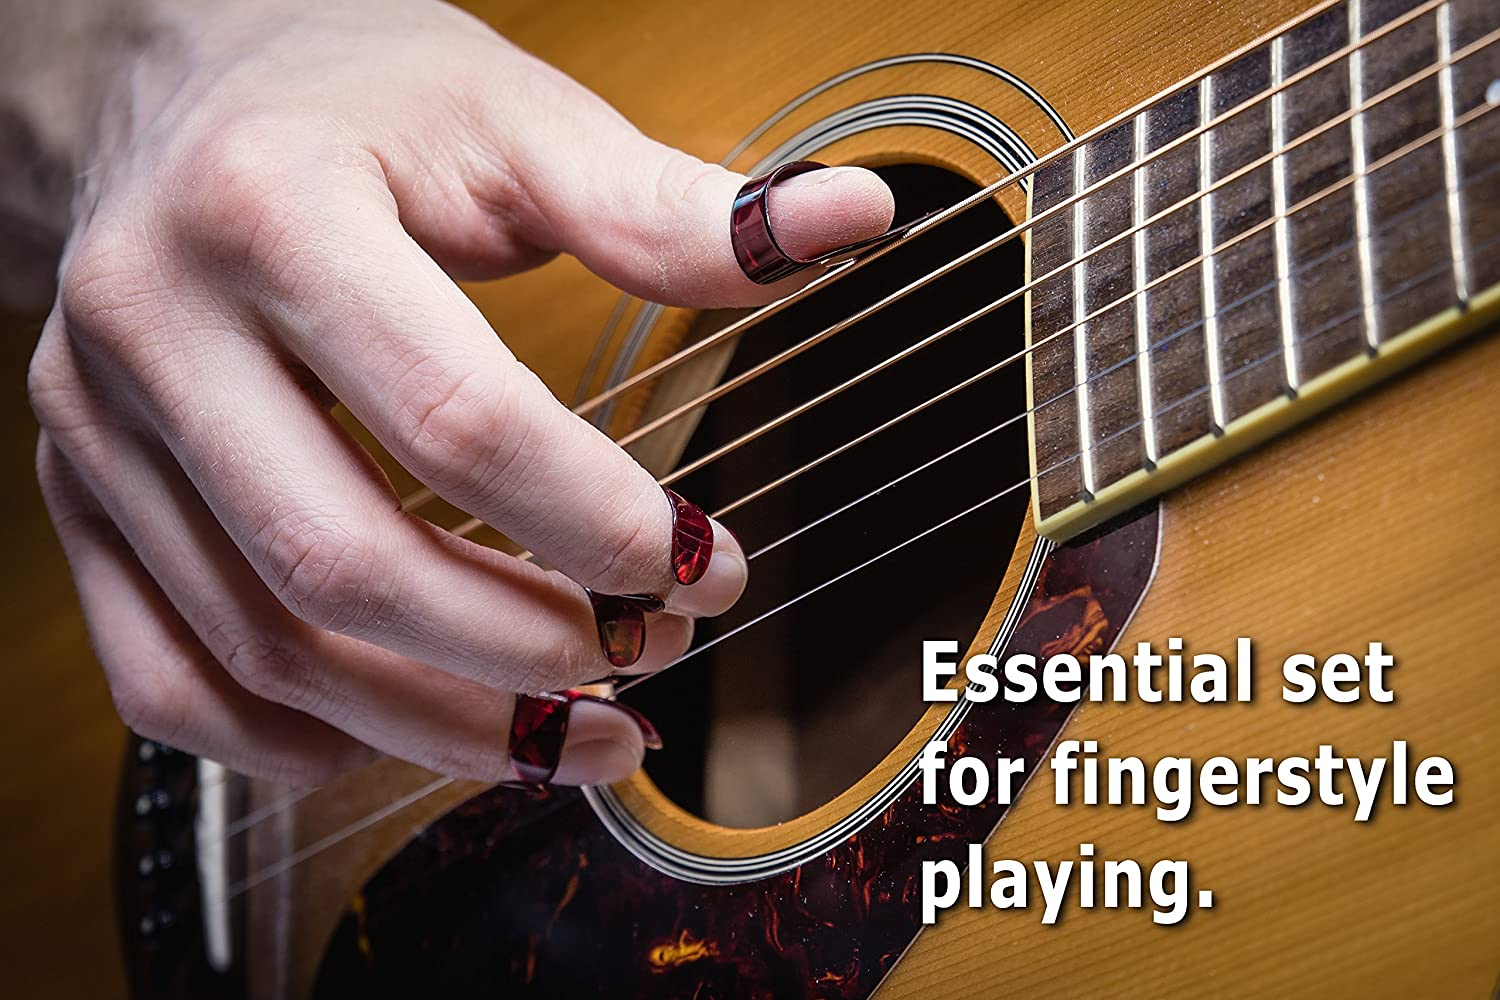 Banjo or Ukulele EPIC berry Thumb and Finger Picks Best for Fingerstyle Acoustic Guitar Large Red Includes a Pouch.